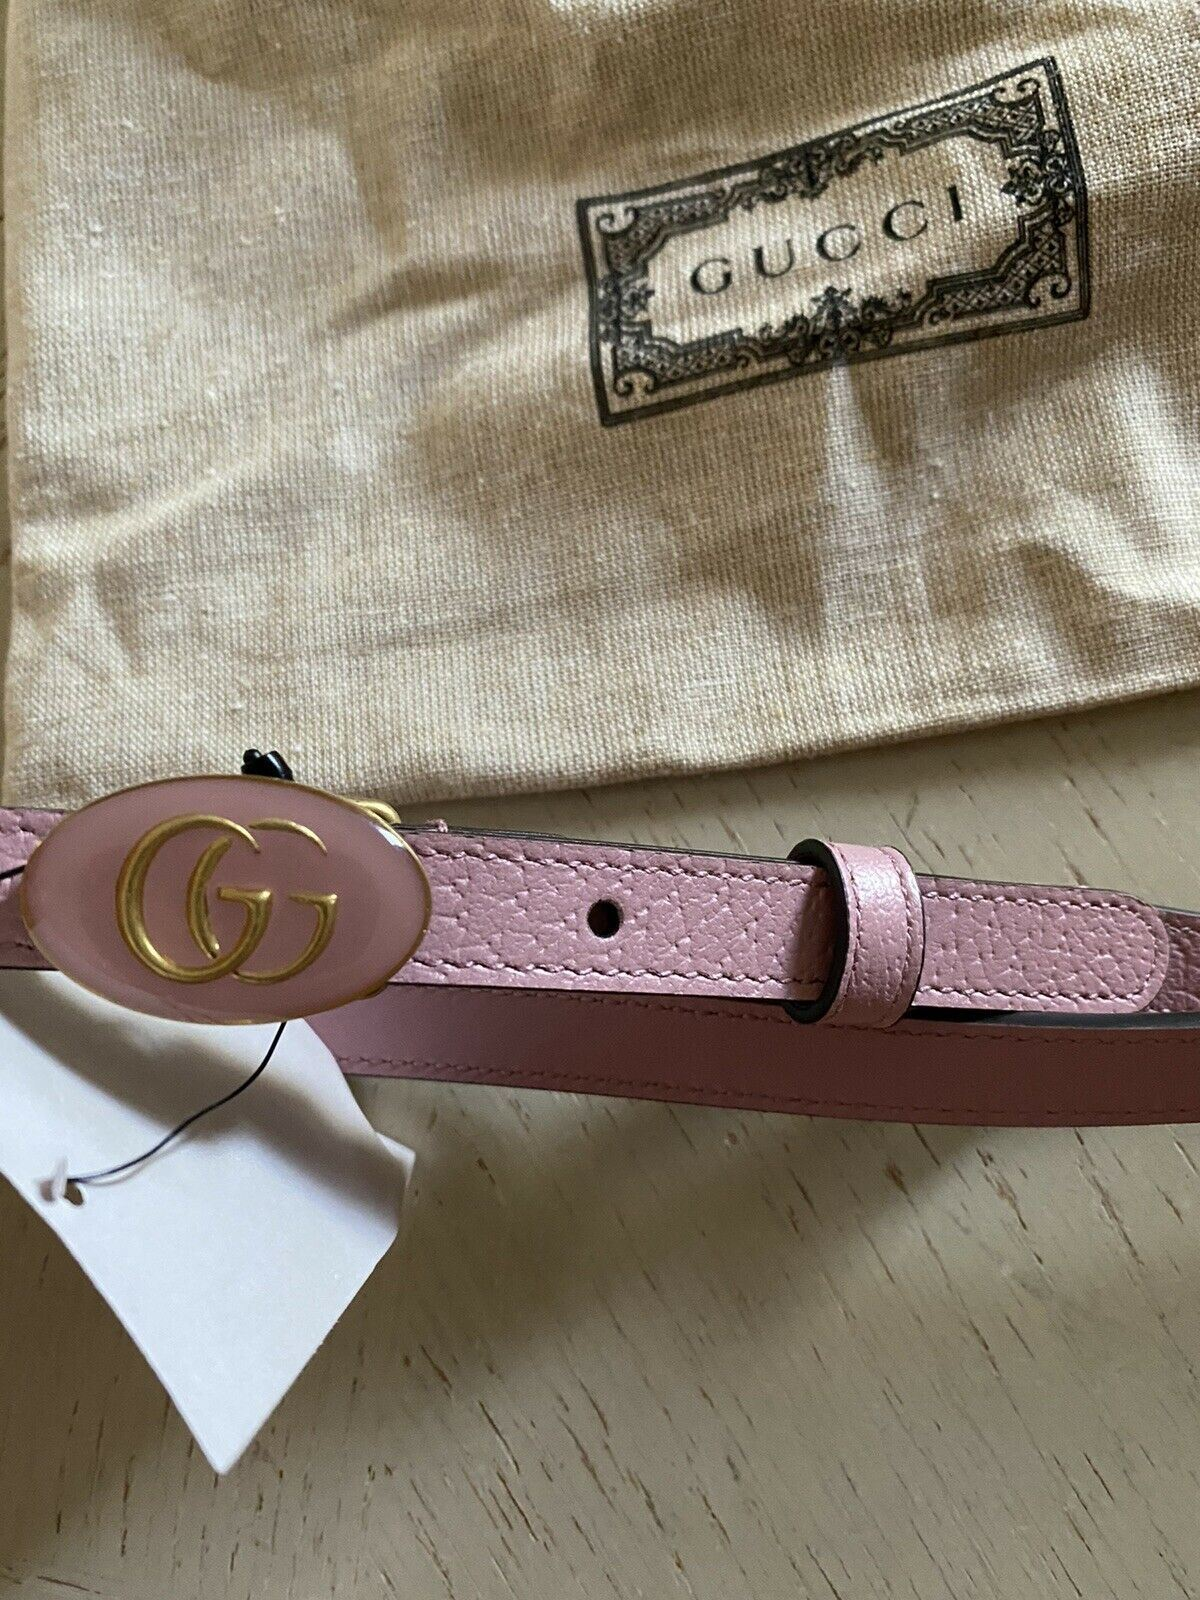 New Gucci Women's GG Enamel Bucle Leather Belt Pink 100/40 Italy